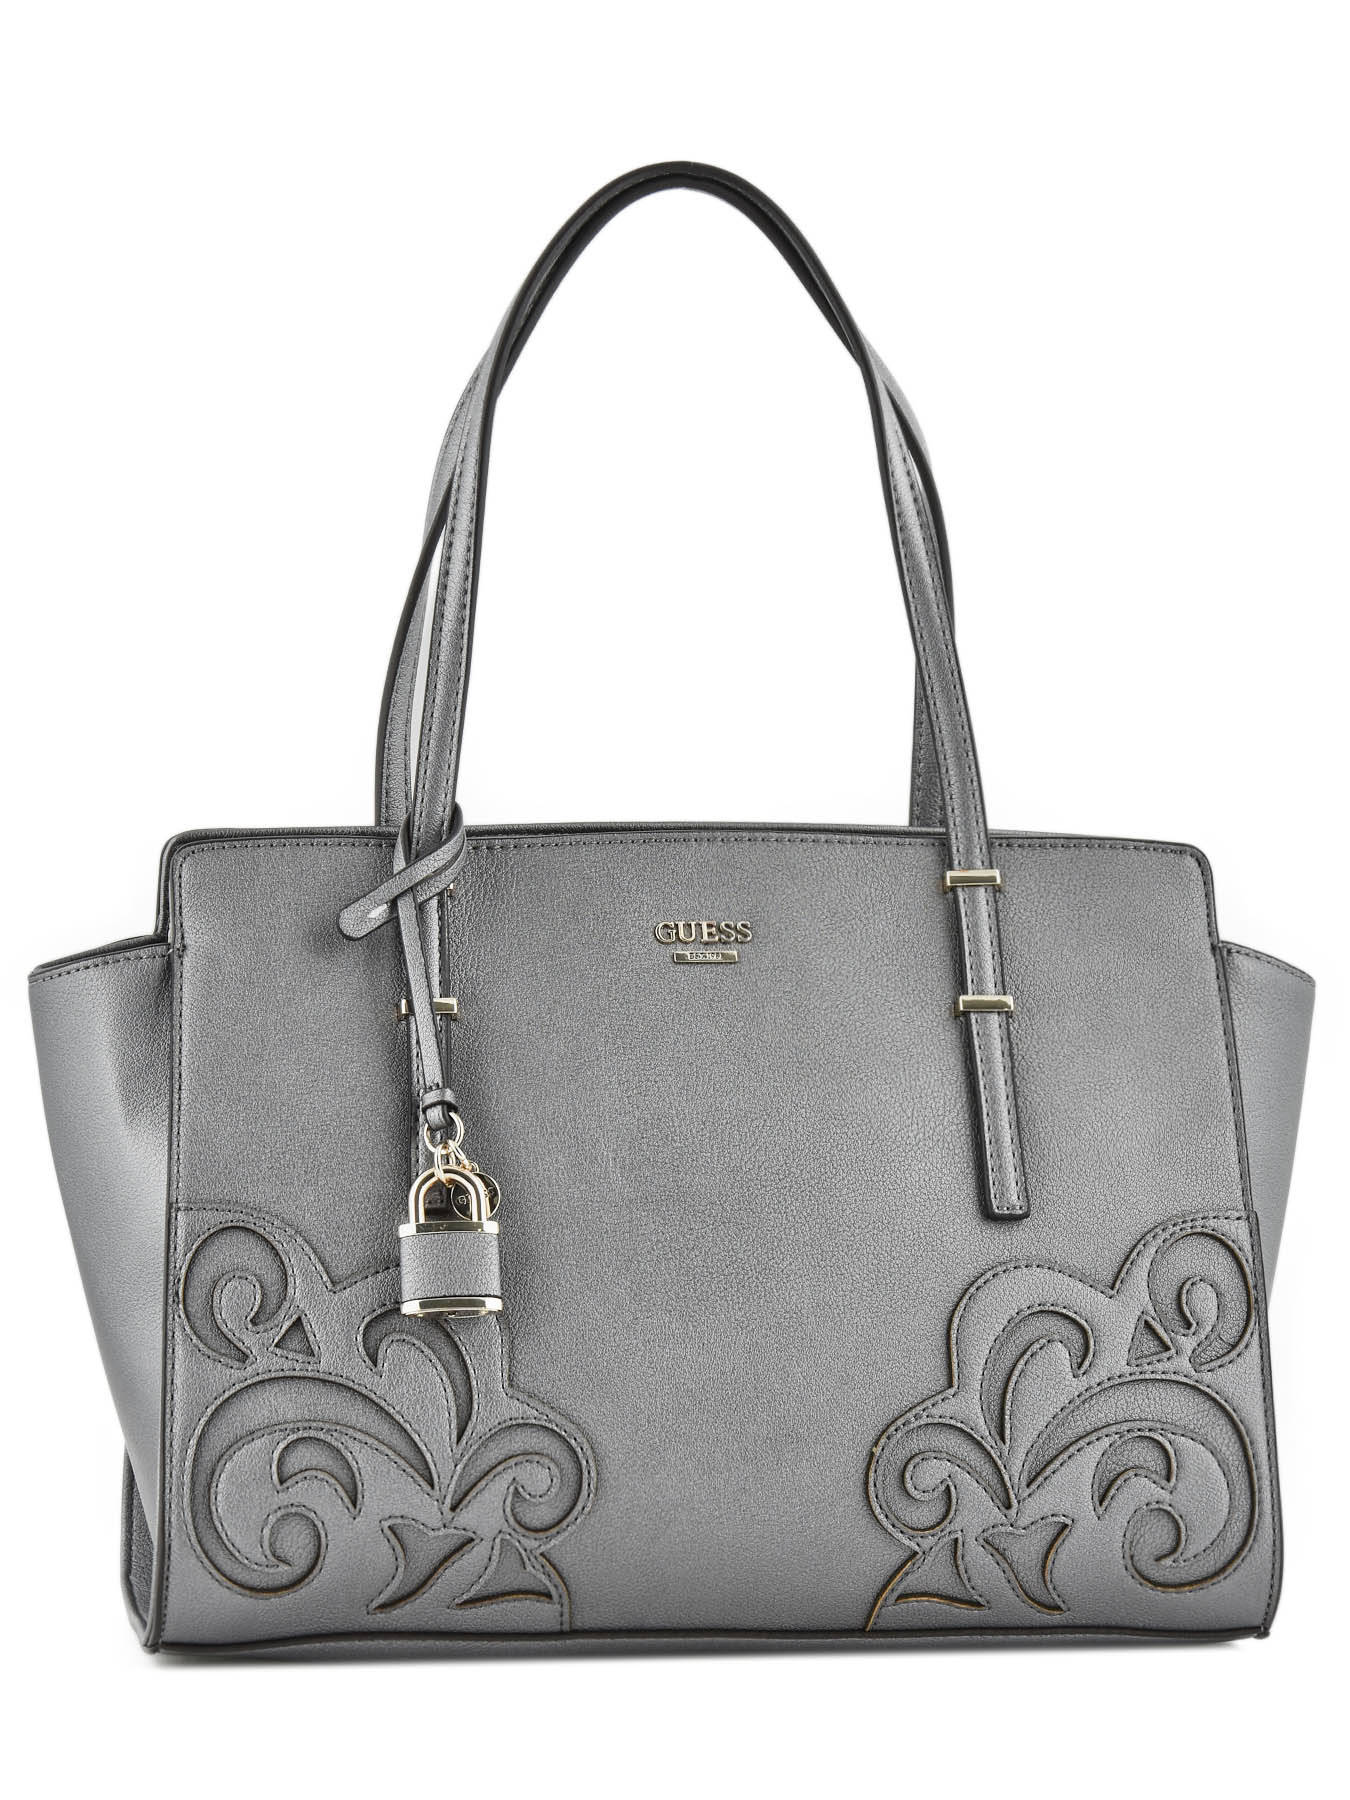 Guess Bag Price In Thailand Sema Data Co Op